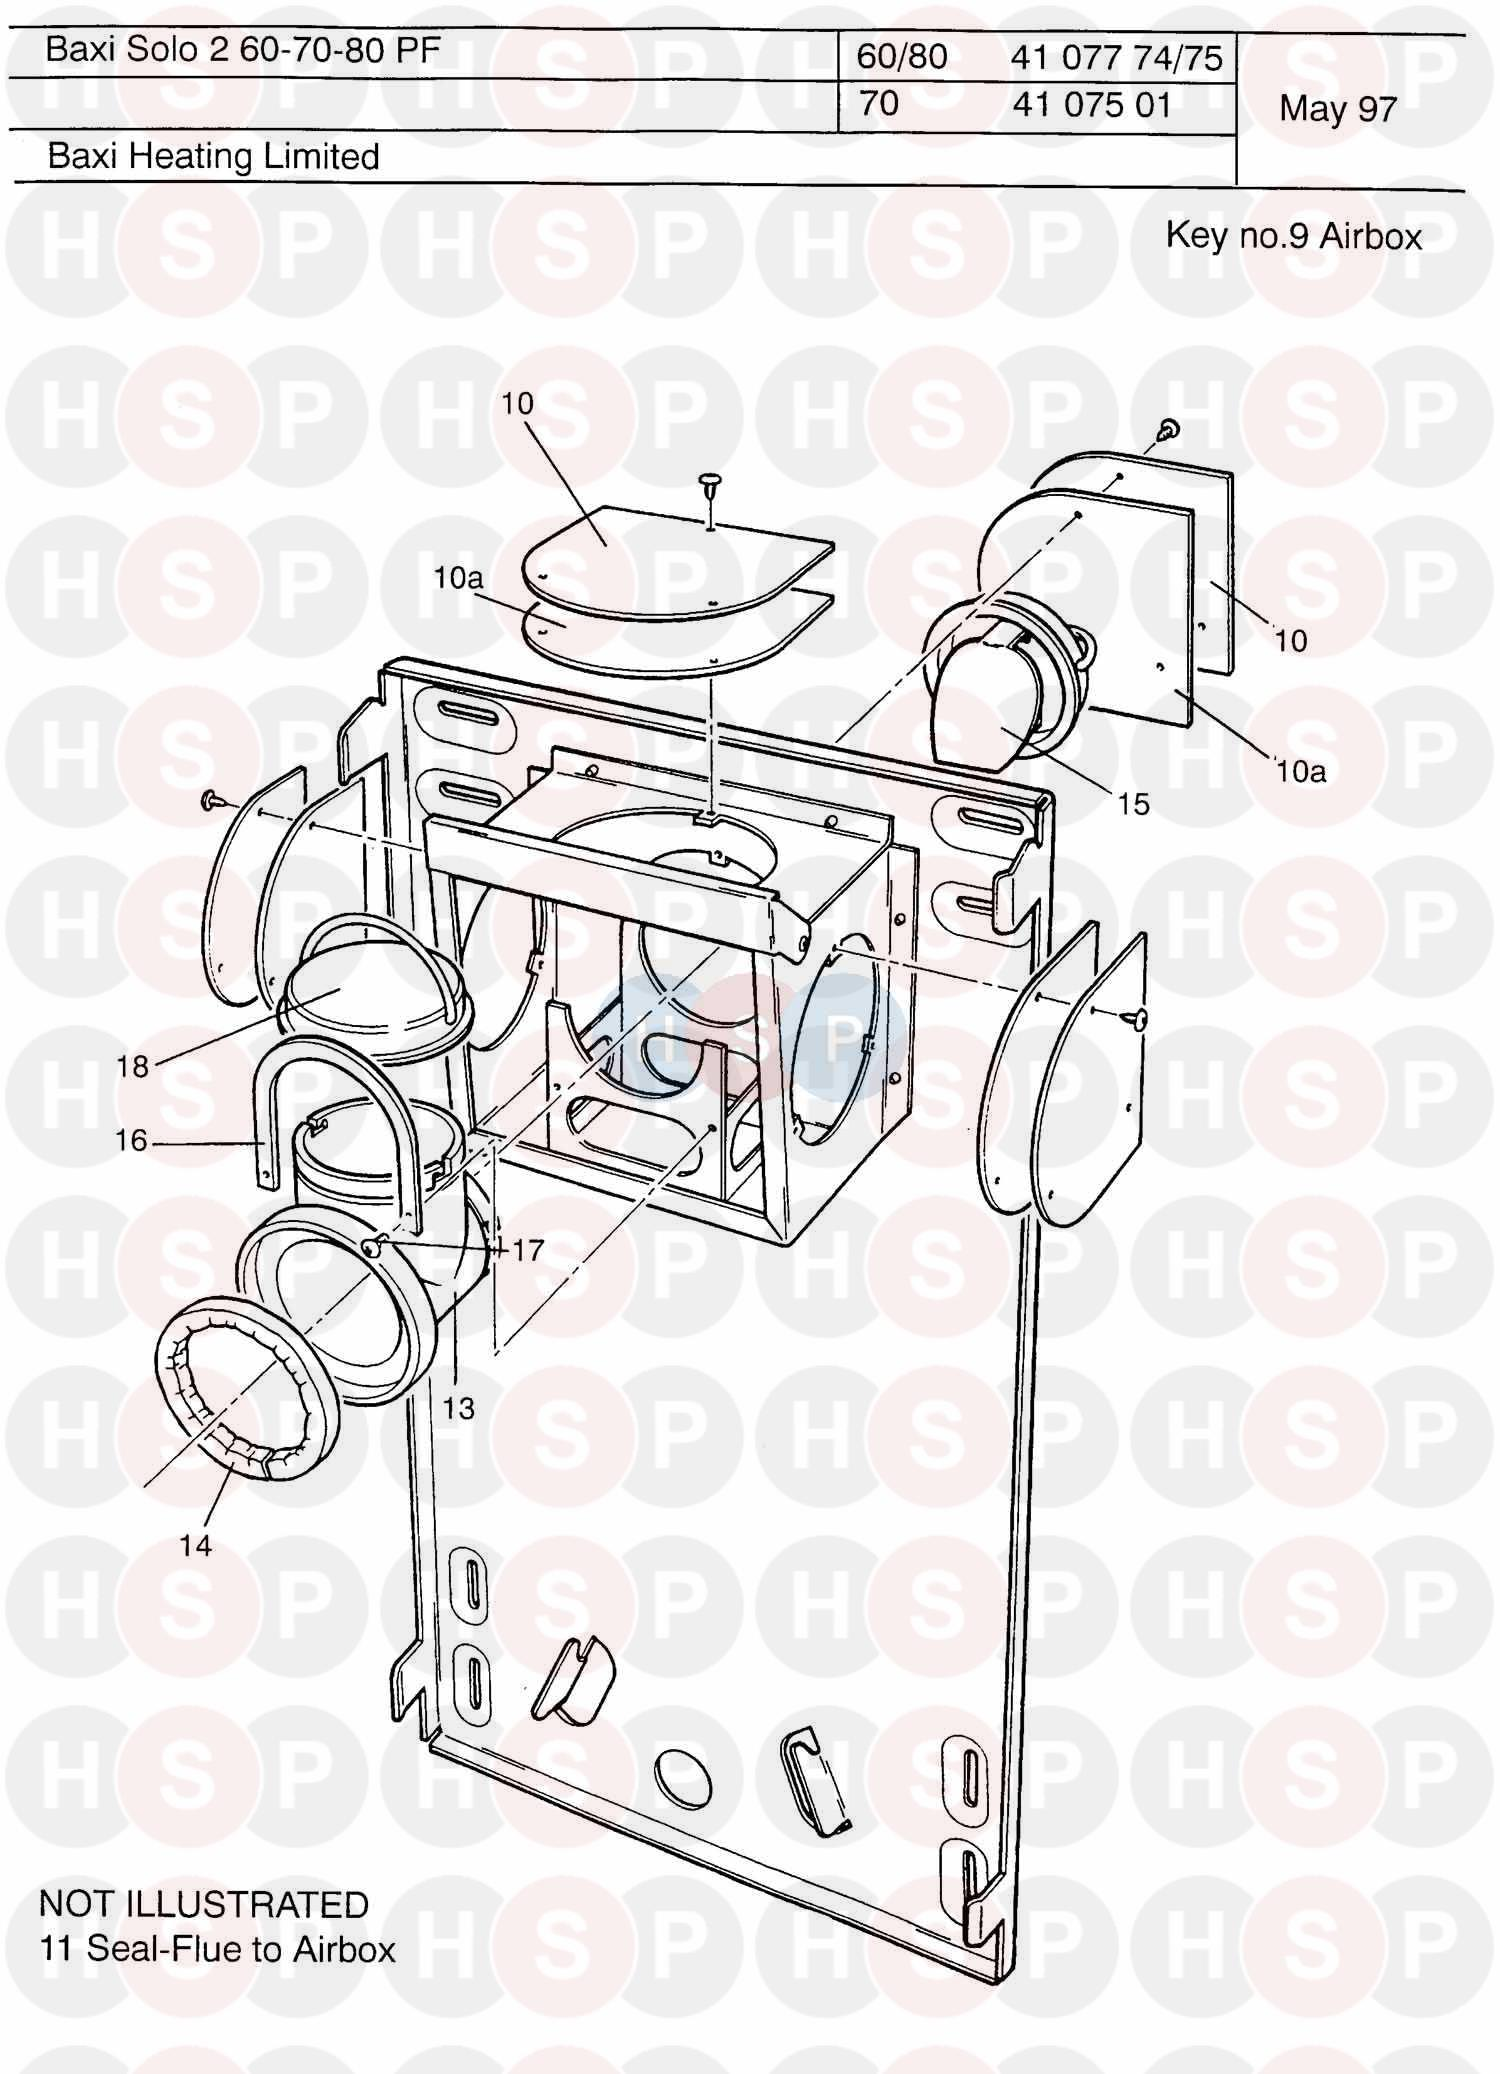 baxi solo pf 2 60 boiler diagram  air box